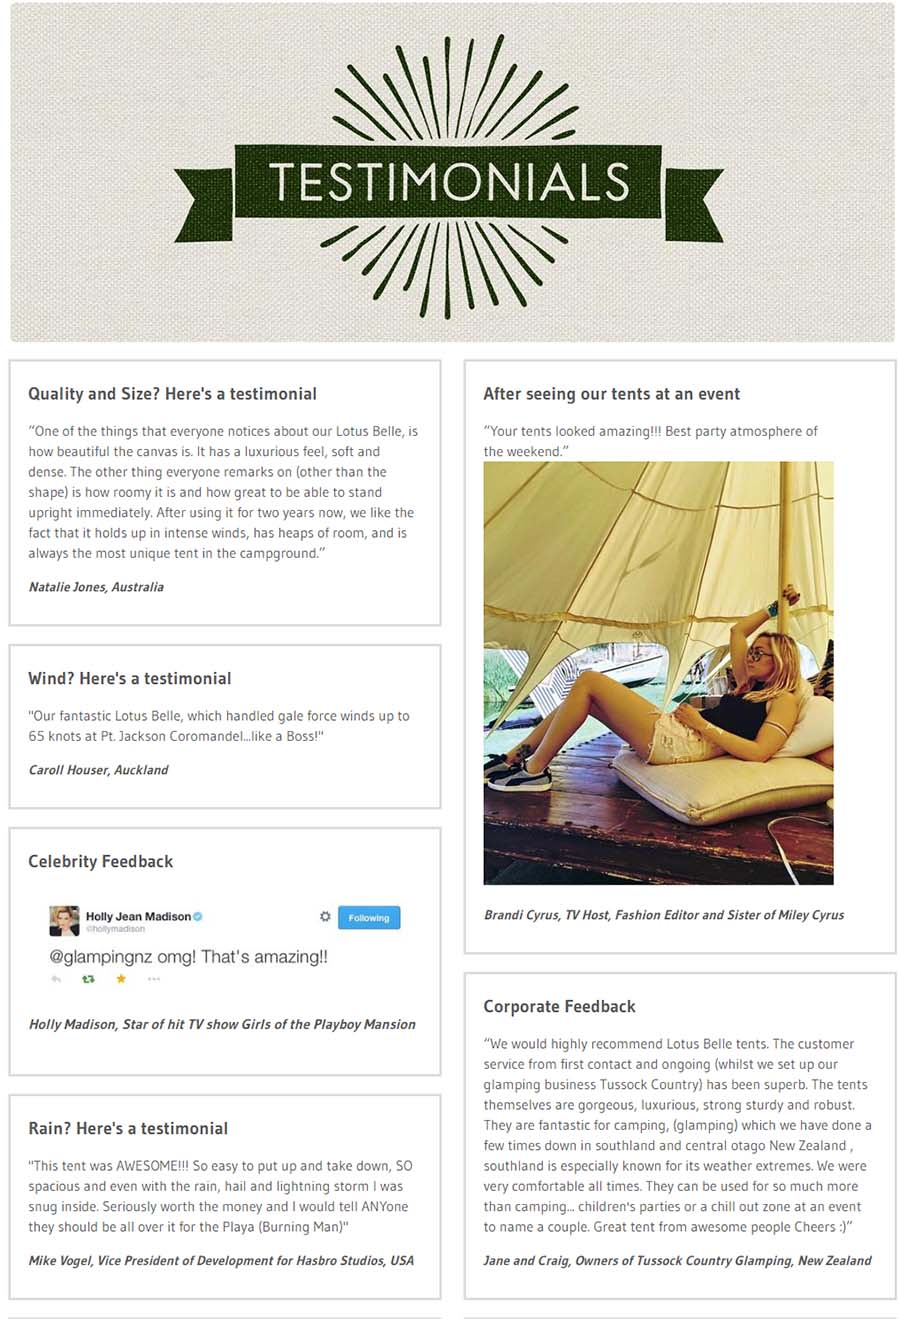 Testimonial page by Lotus Belle